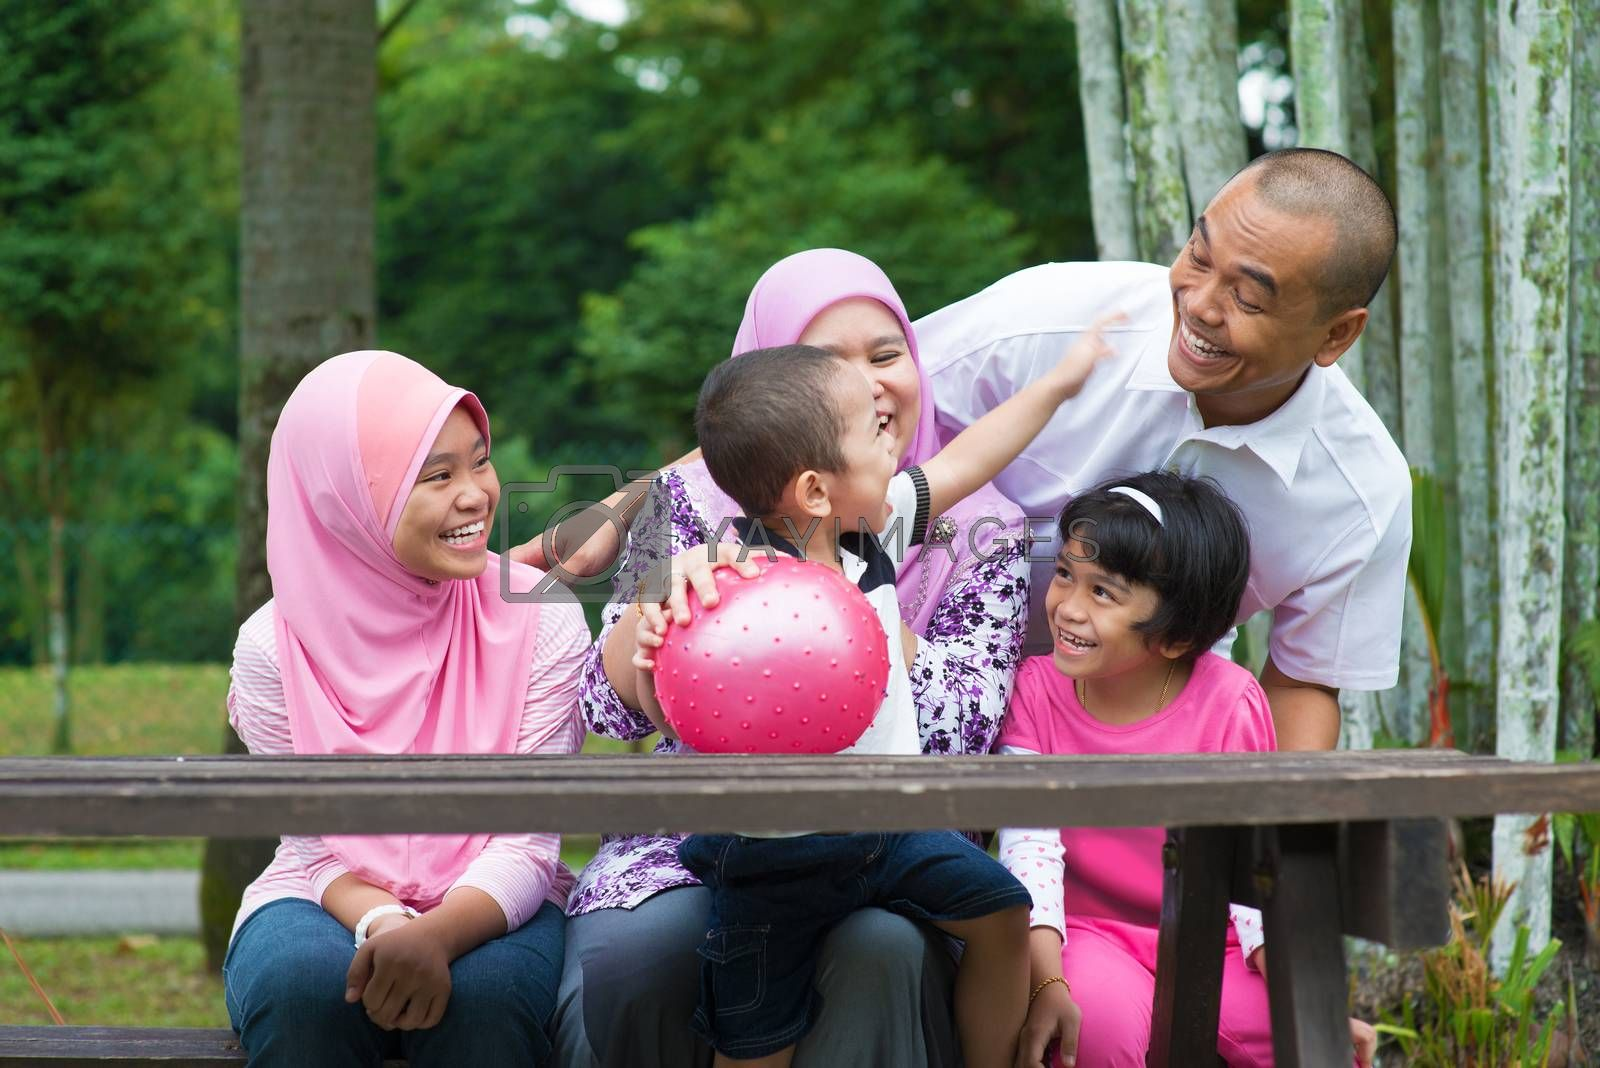 Happy Southeast Asian family sitting at garden bench having fun, outdoor lifestyle at nature green park.